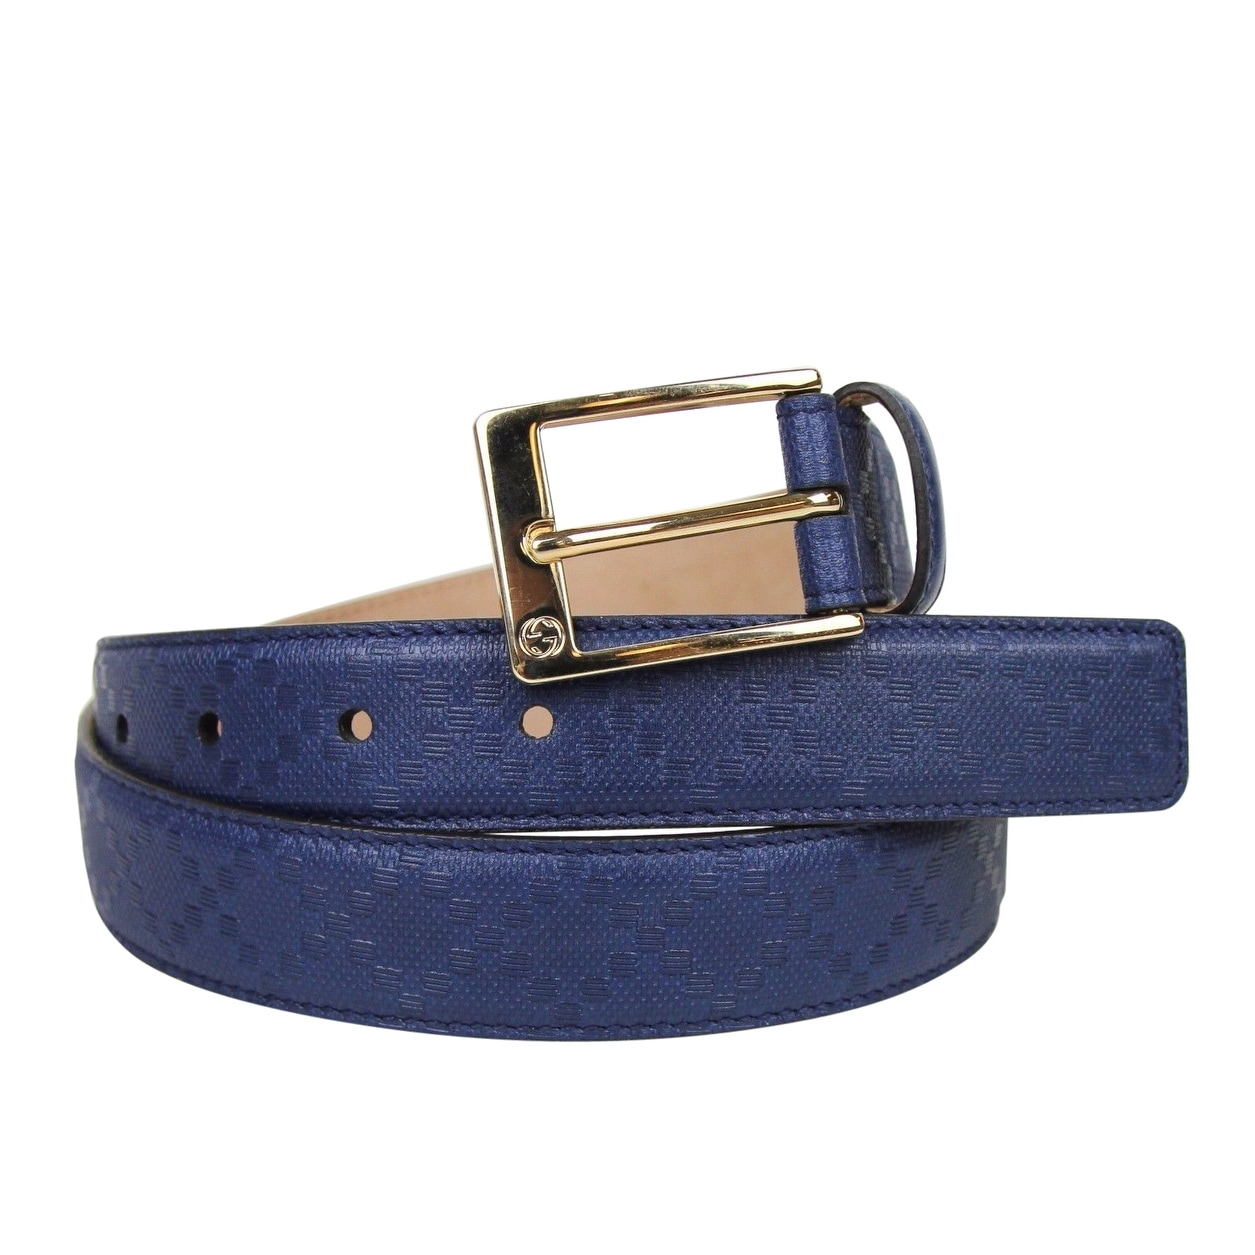 5e7f1d752cc Shop Gucci Men s Square Navy Blue Leather Belt With Buckle 345658 4232 -  Free Shipping Today - Overstock - 25455586